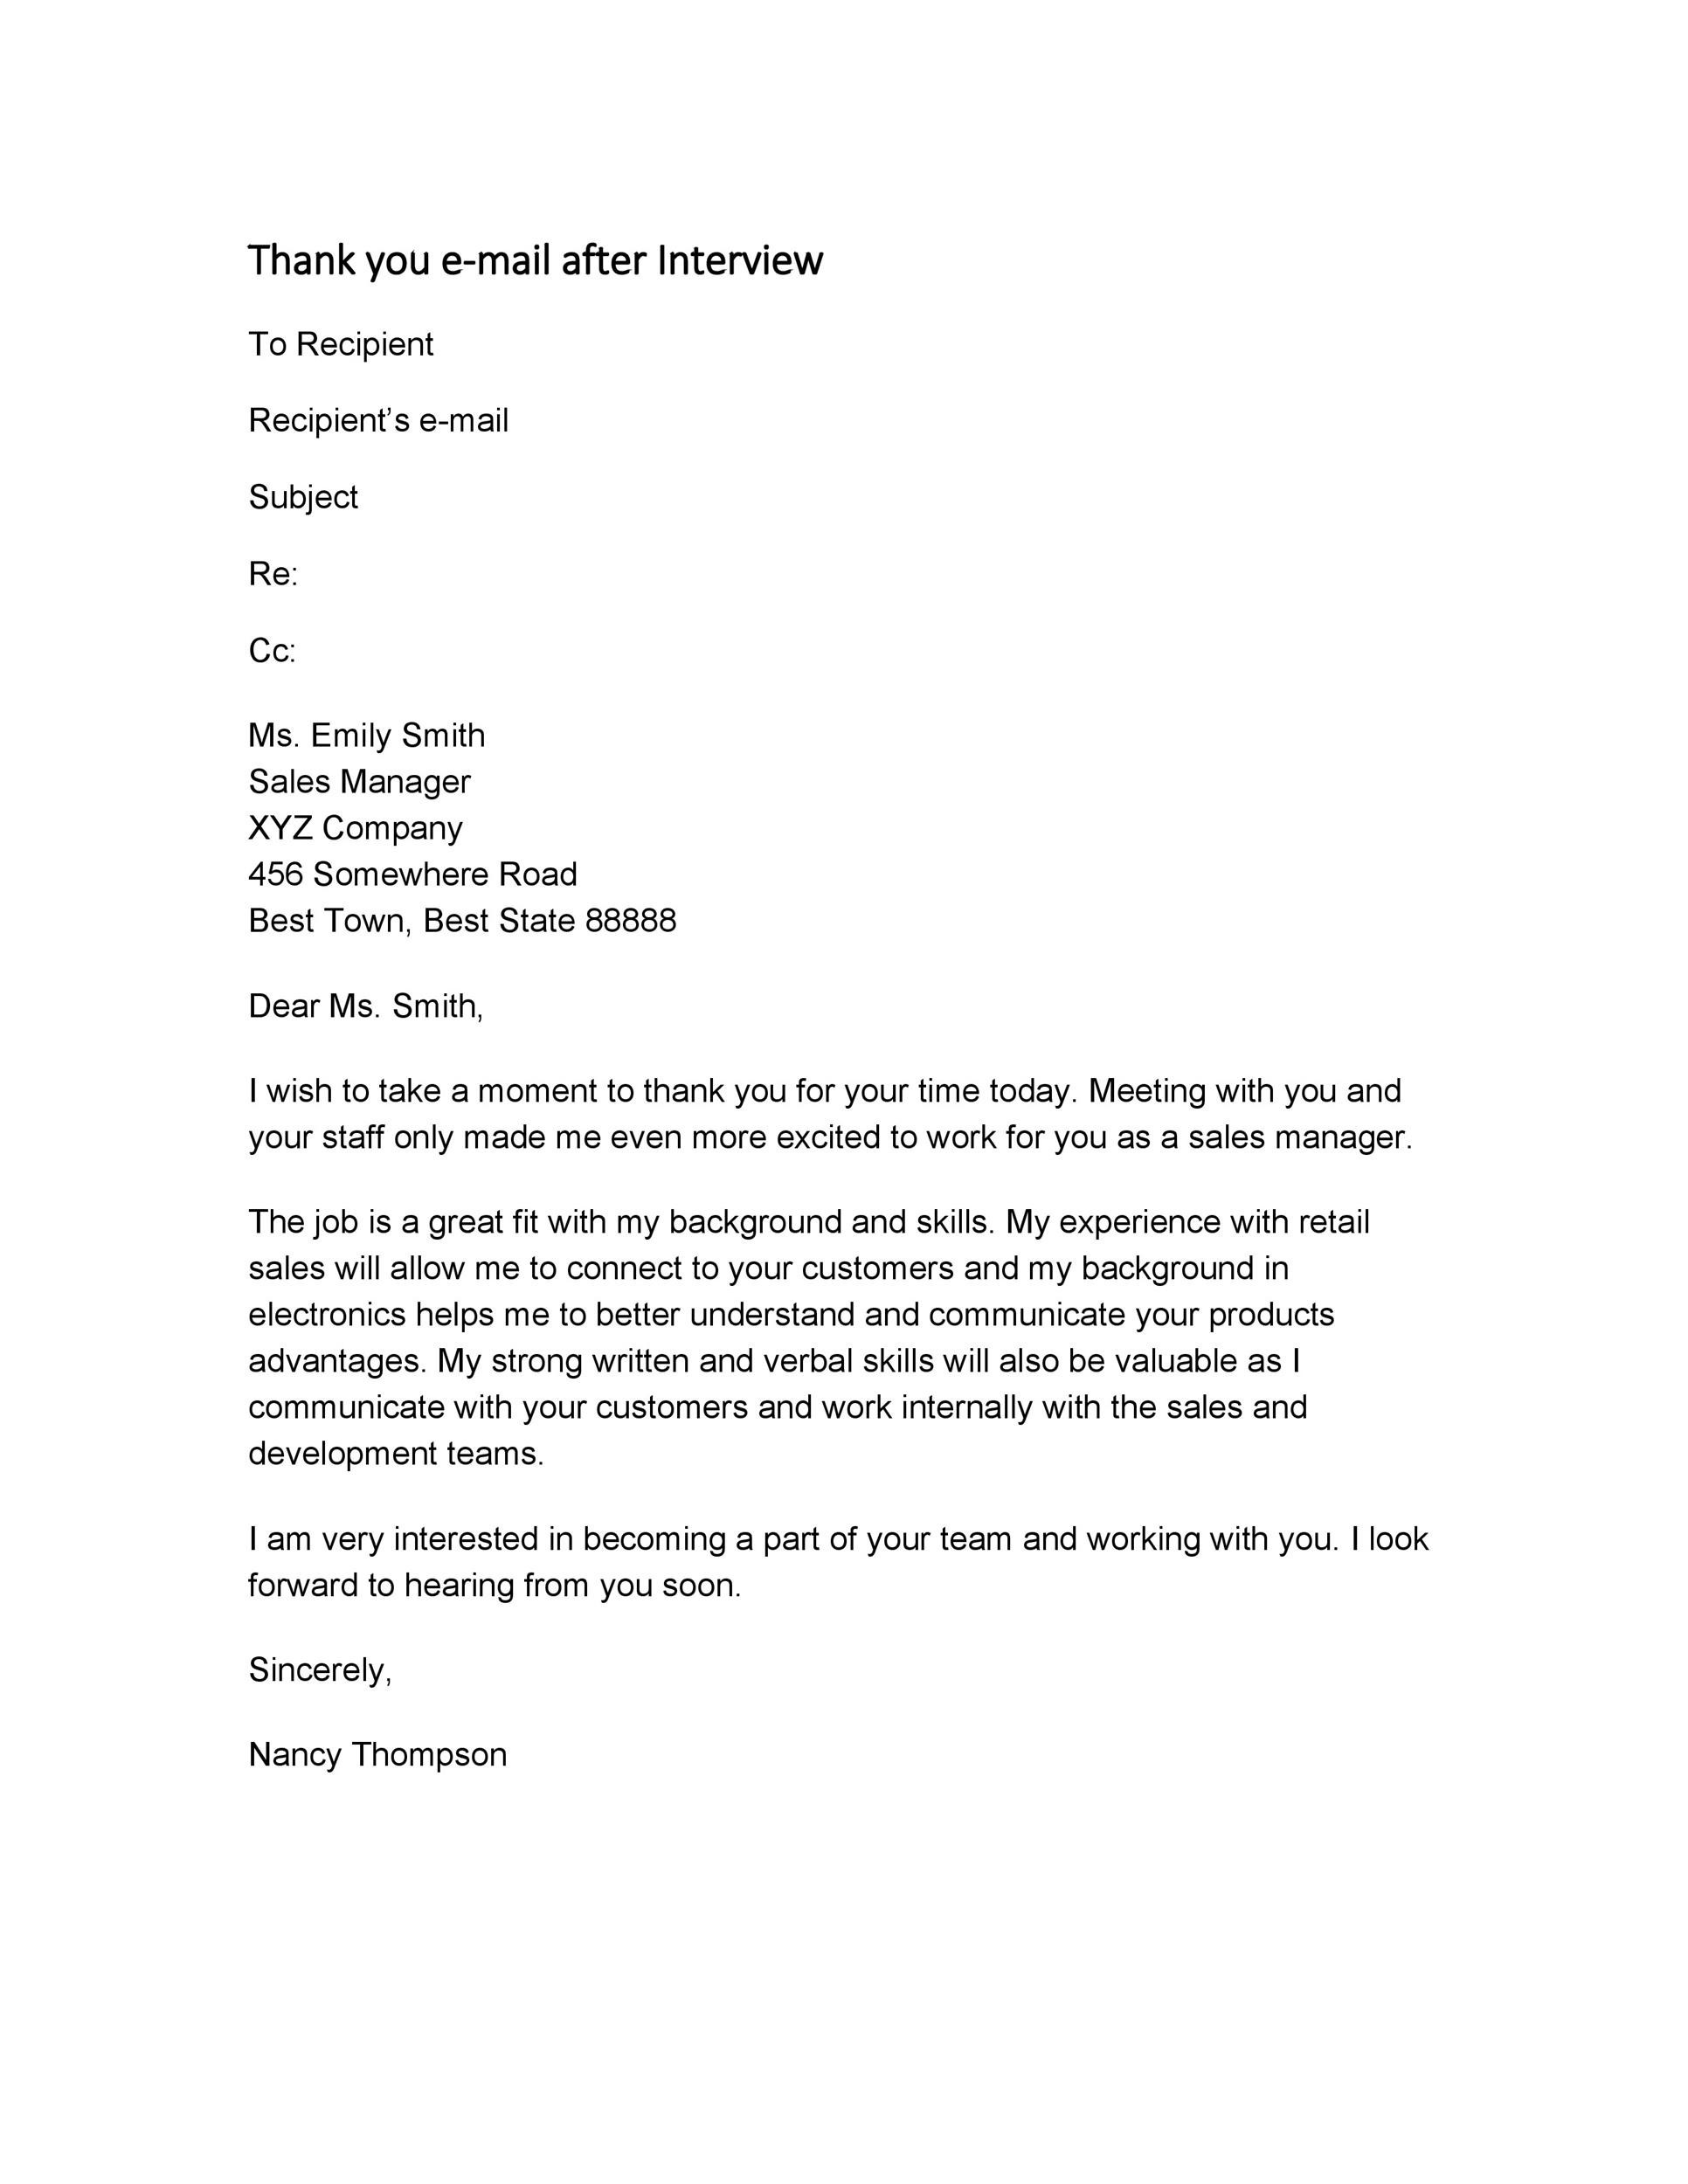 Free Thank you e-mail after Interview Template 29